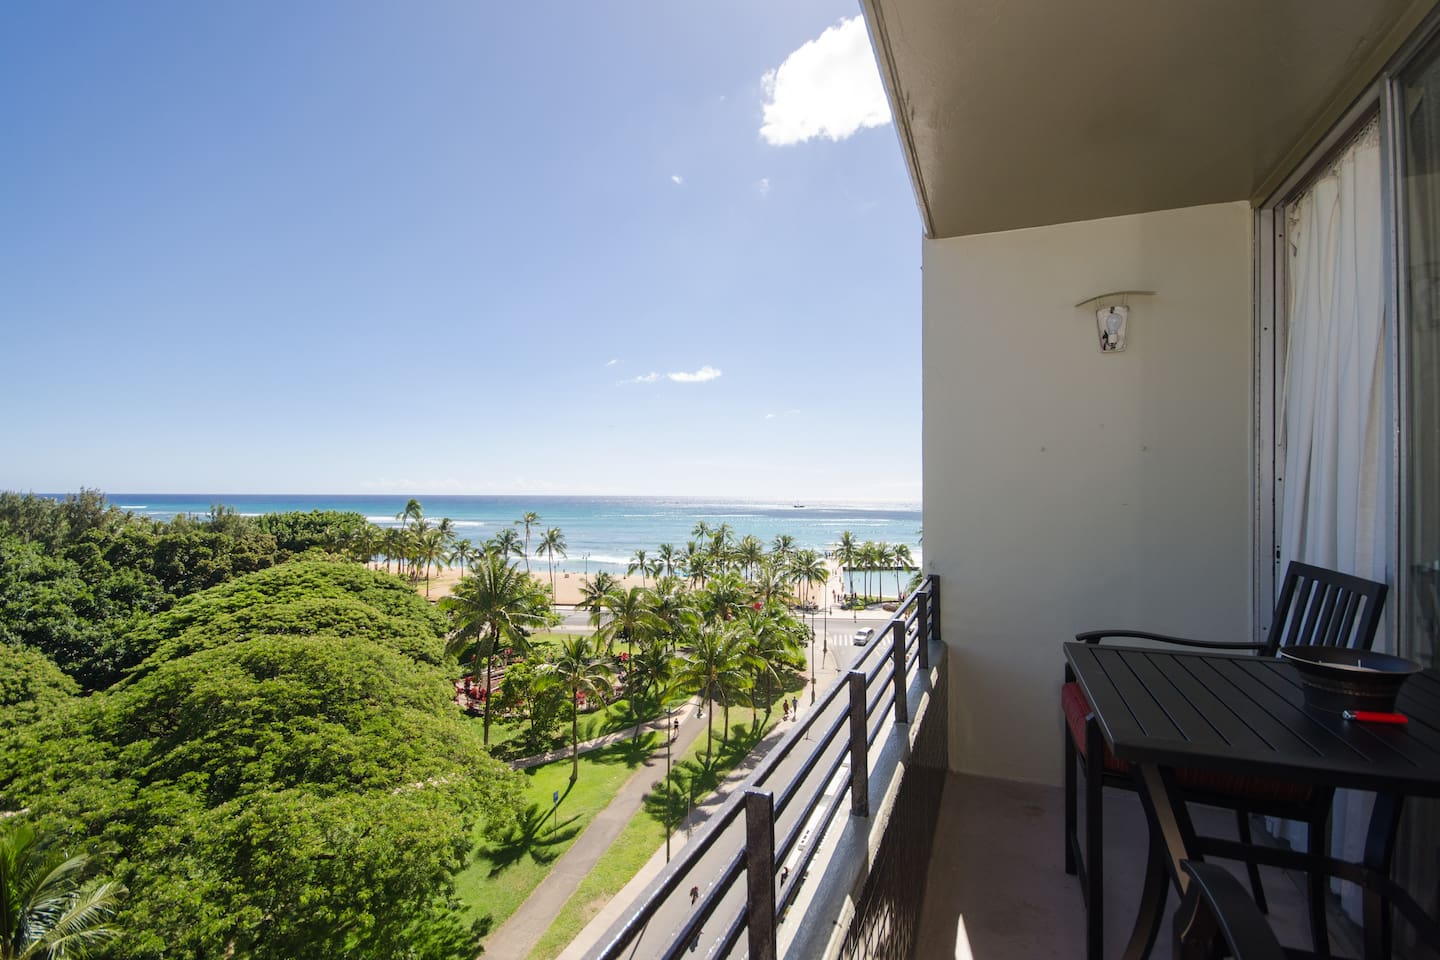 Private Lanai with gorgeous views of the beach, zoo, and Diamond Head-sunsets are unbelievable!